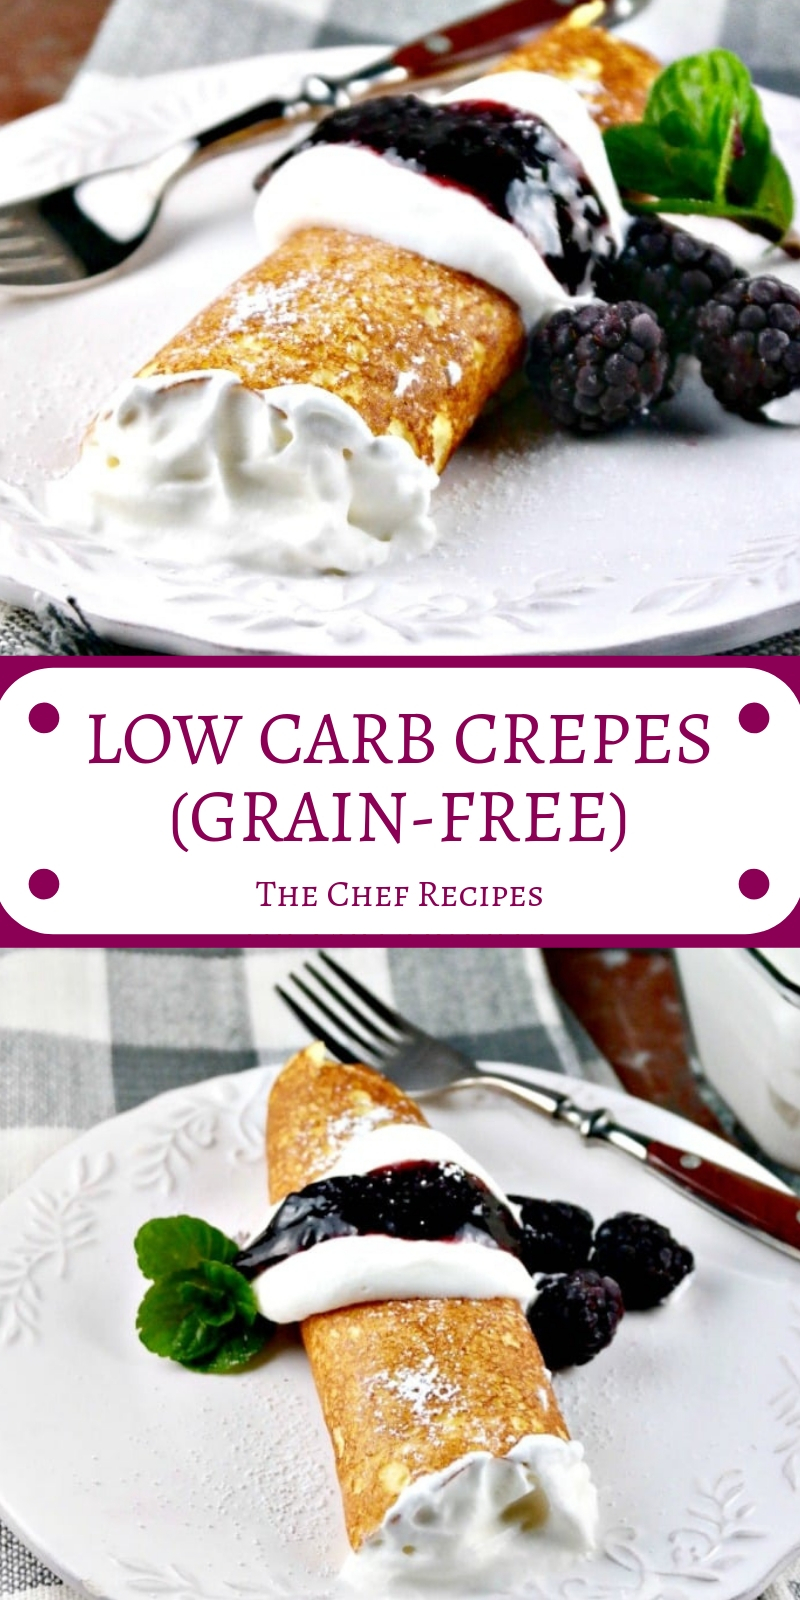 LOW CARB CREPES (GRAIN-FREE)